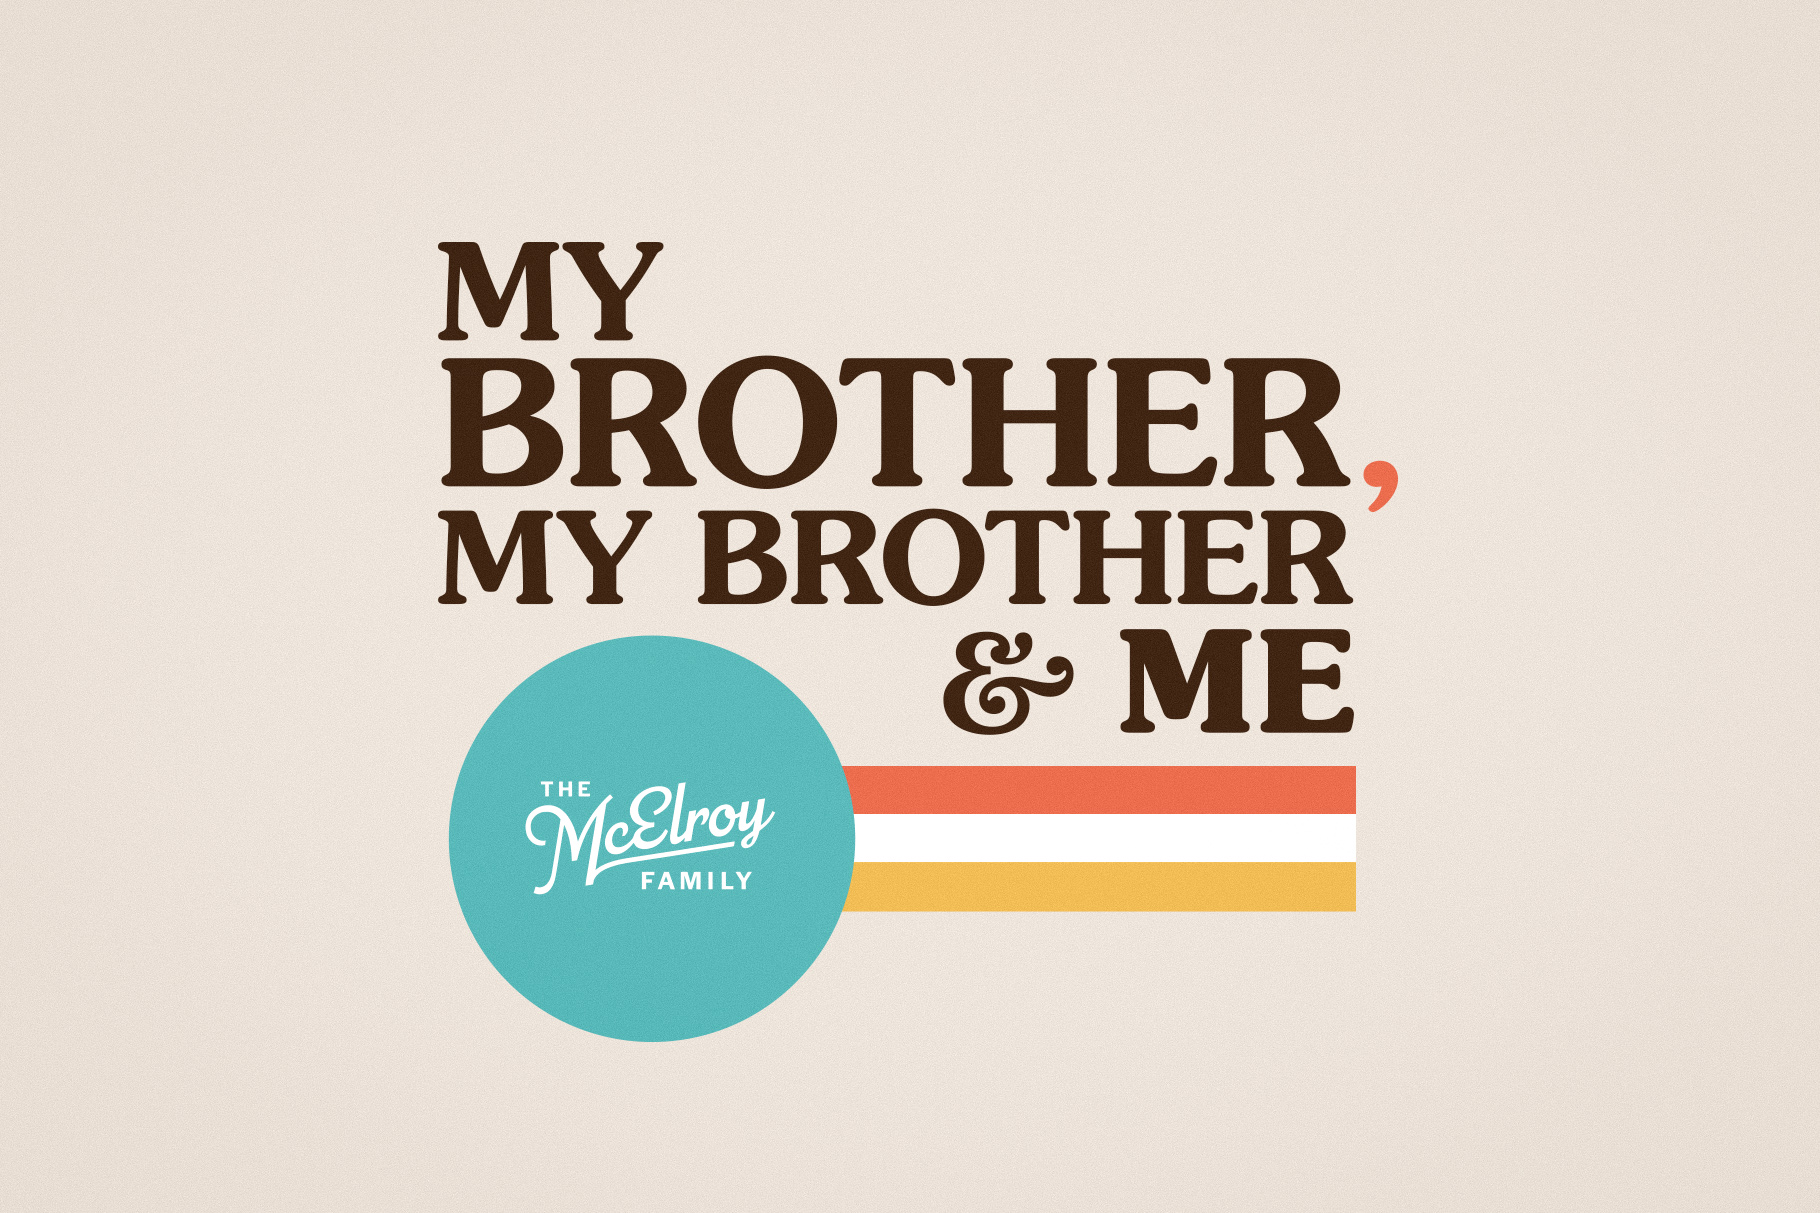 My Brother, My Brother & Me written in brown text on a cream background. There are three horizontal stripes - teal, white, and yellow- overlapped by a red half circle. The Mcelroy Family logo is in the bottom right corner in teal.